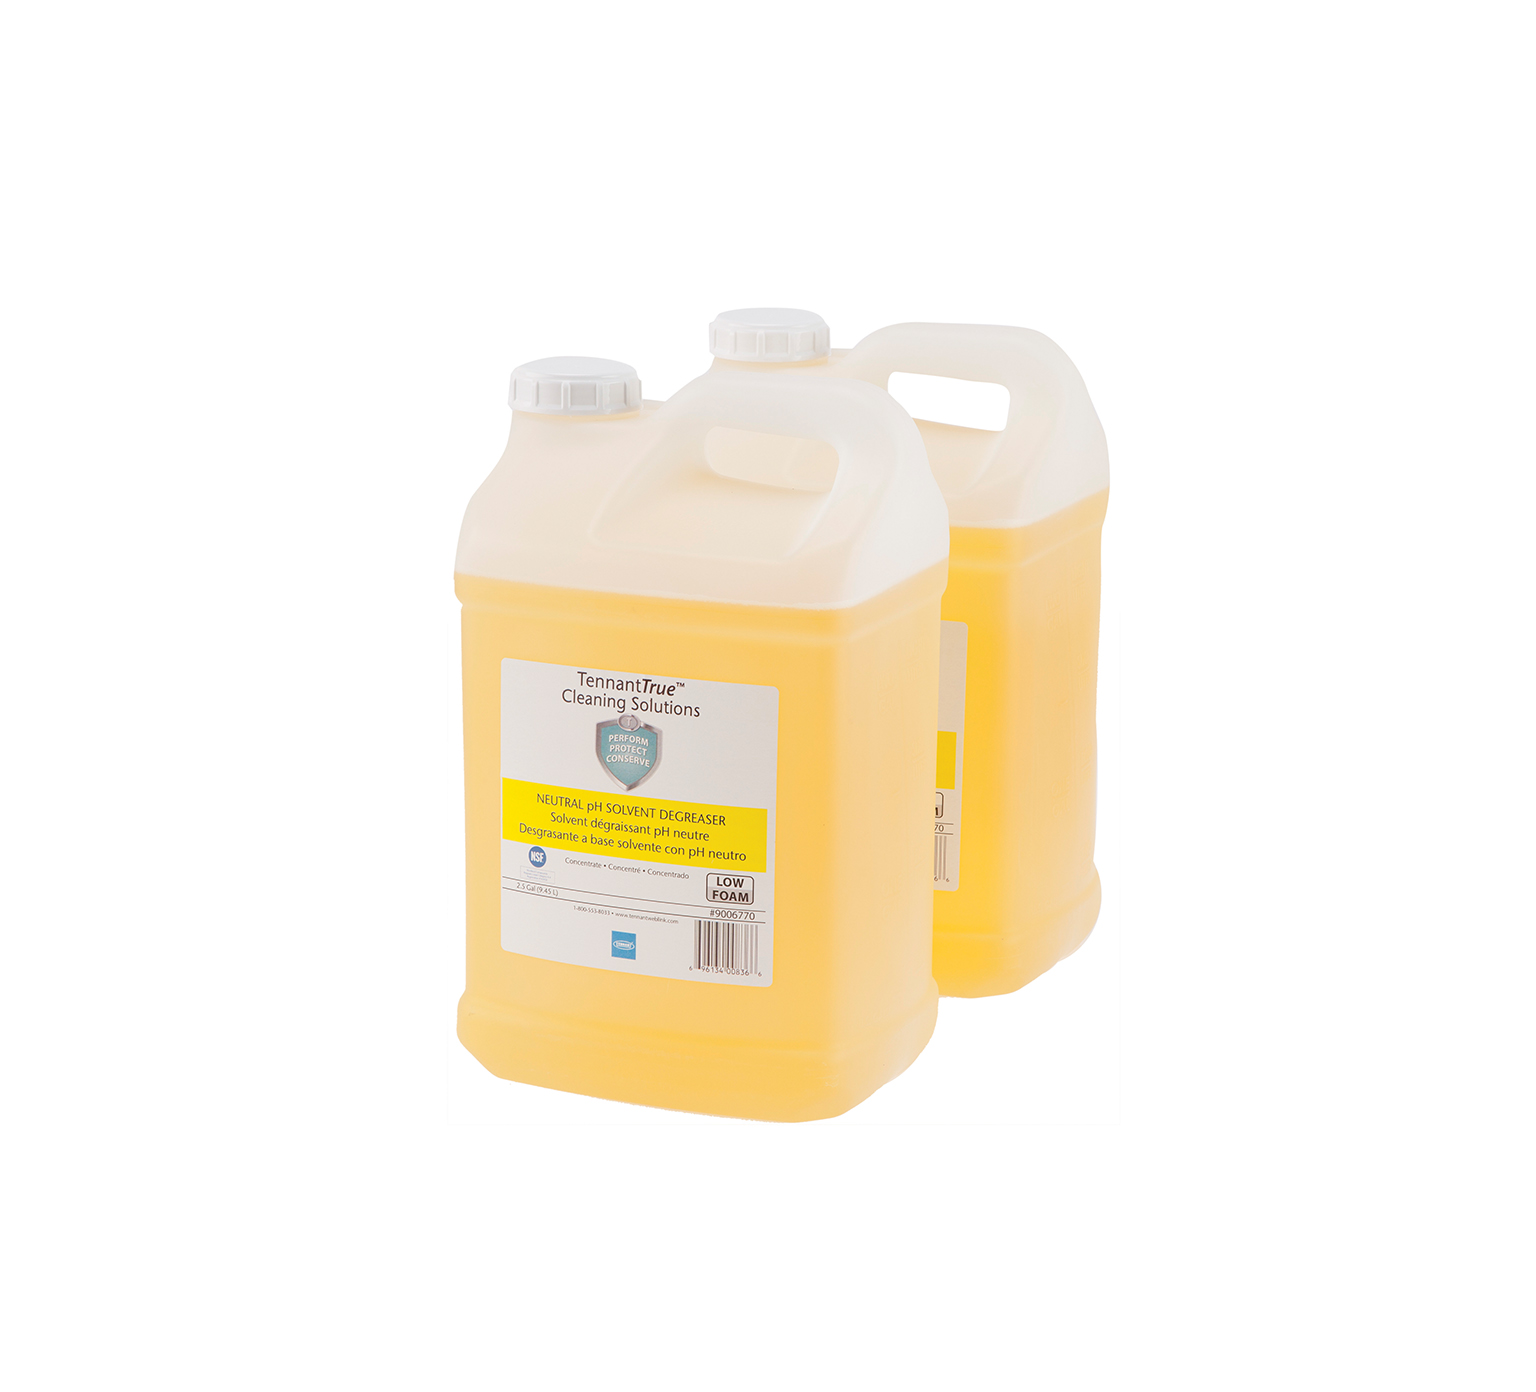 Tennant Yellow Neutral pH Solvent Degreaser 5 Gallon